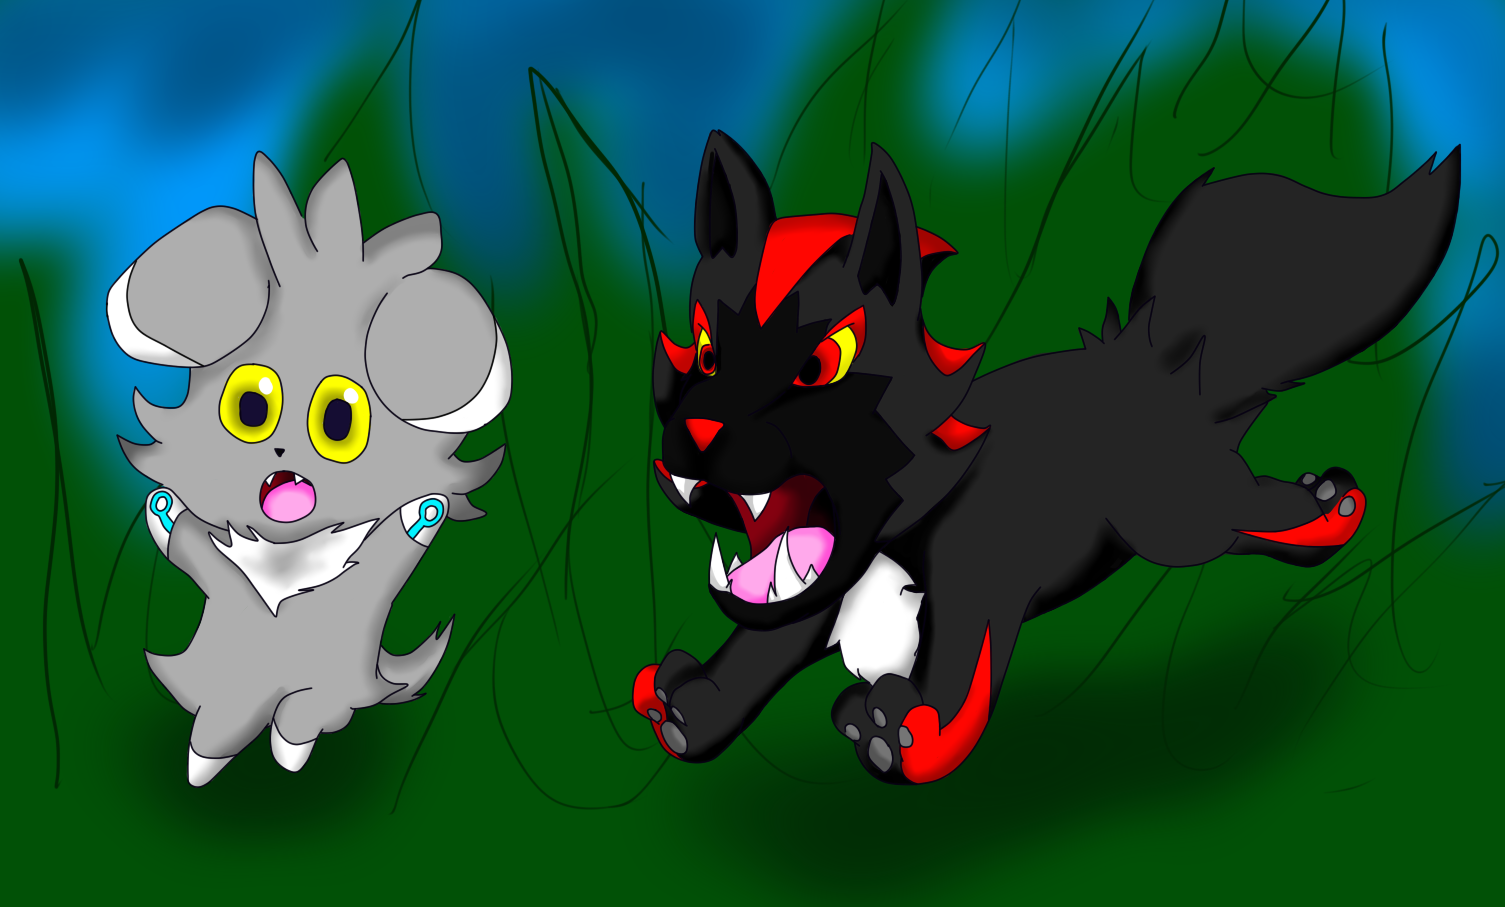 Silver the espurr and shadow the poochyena by - Evolution pokemon argent ...